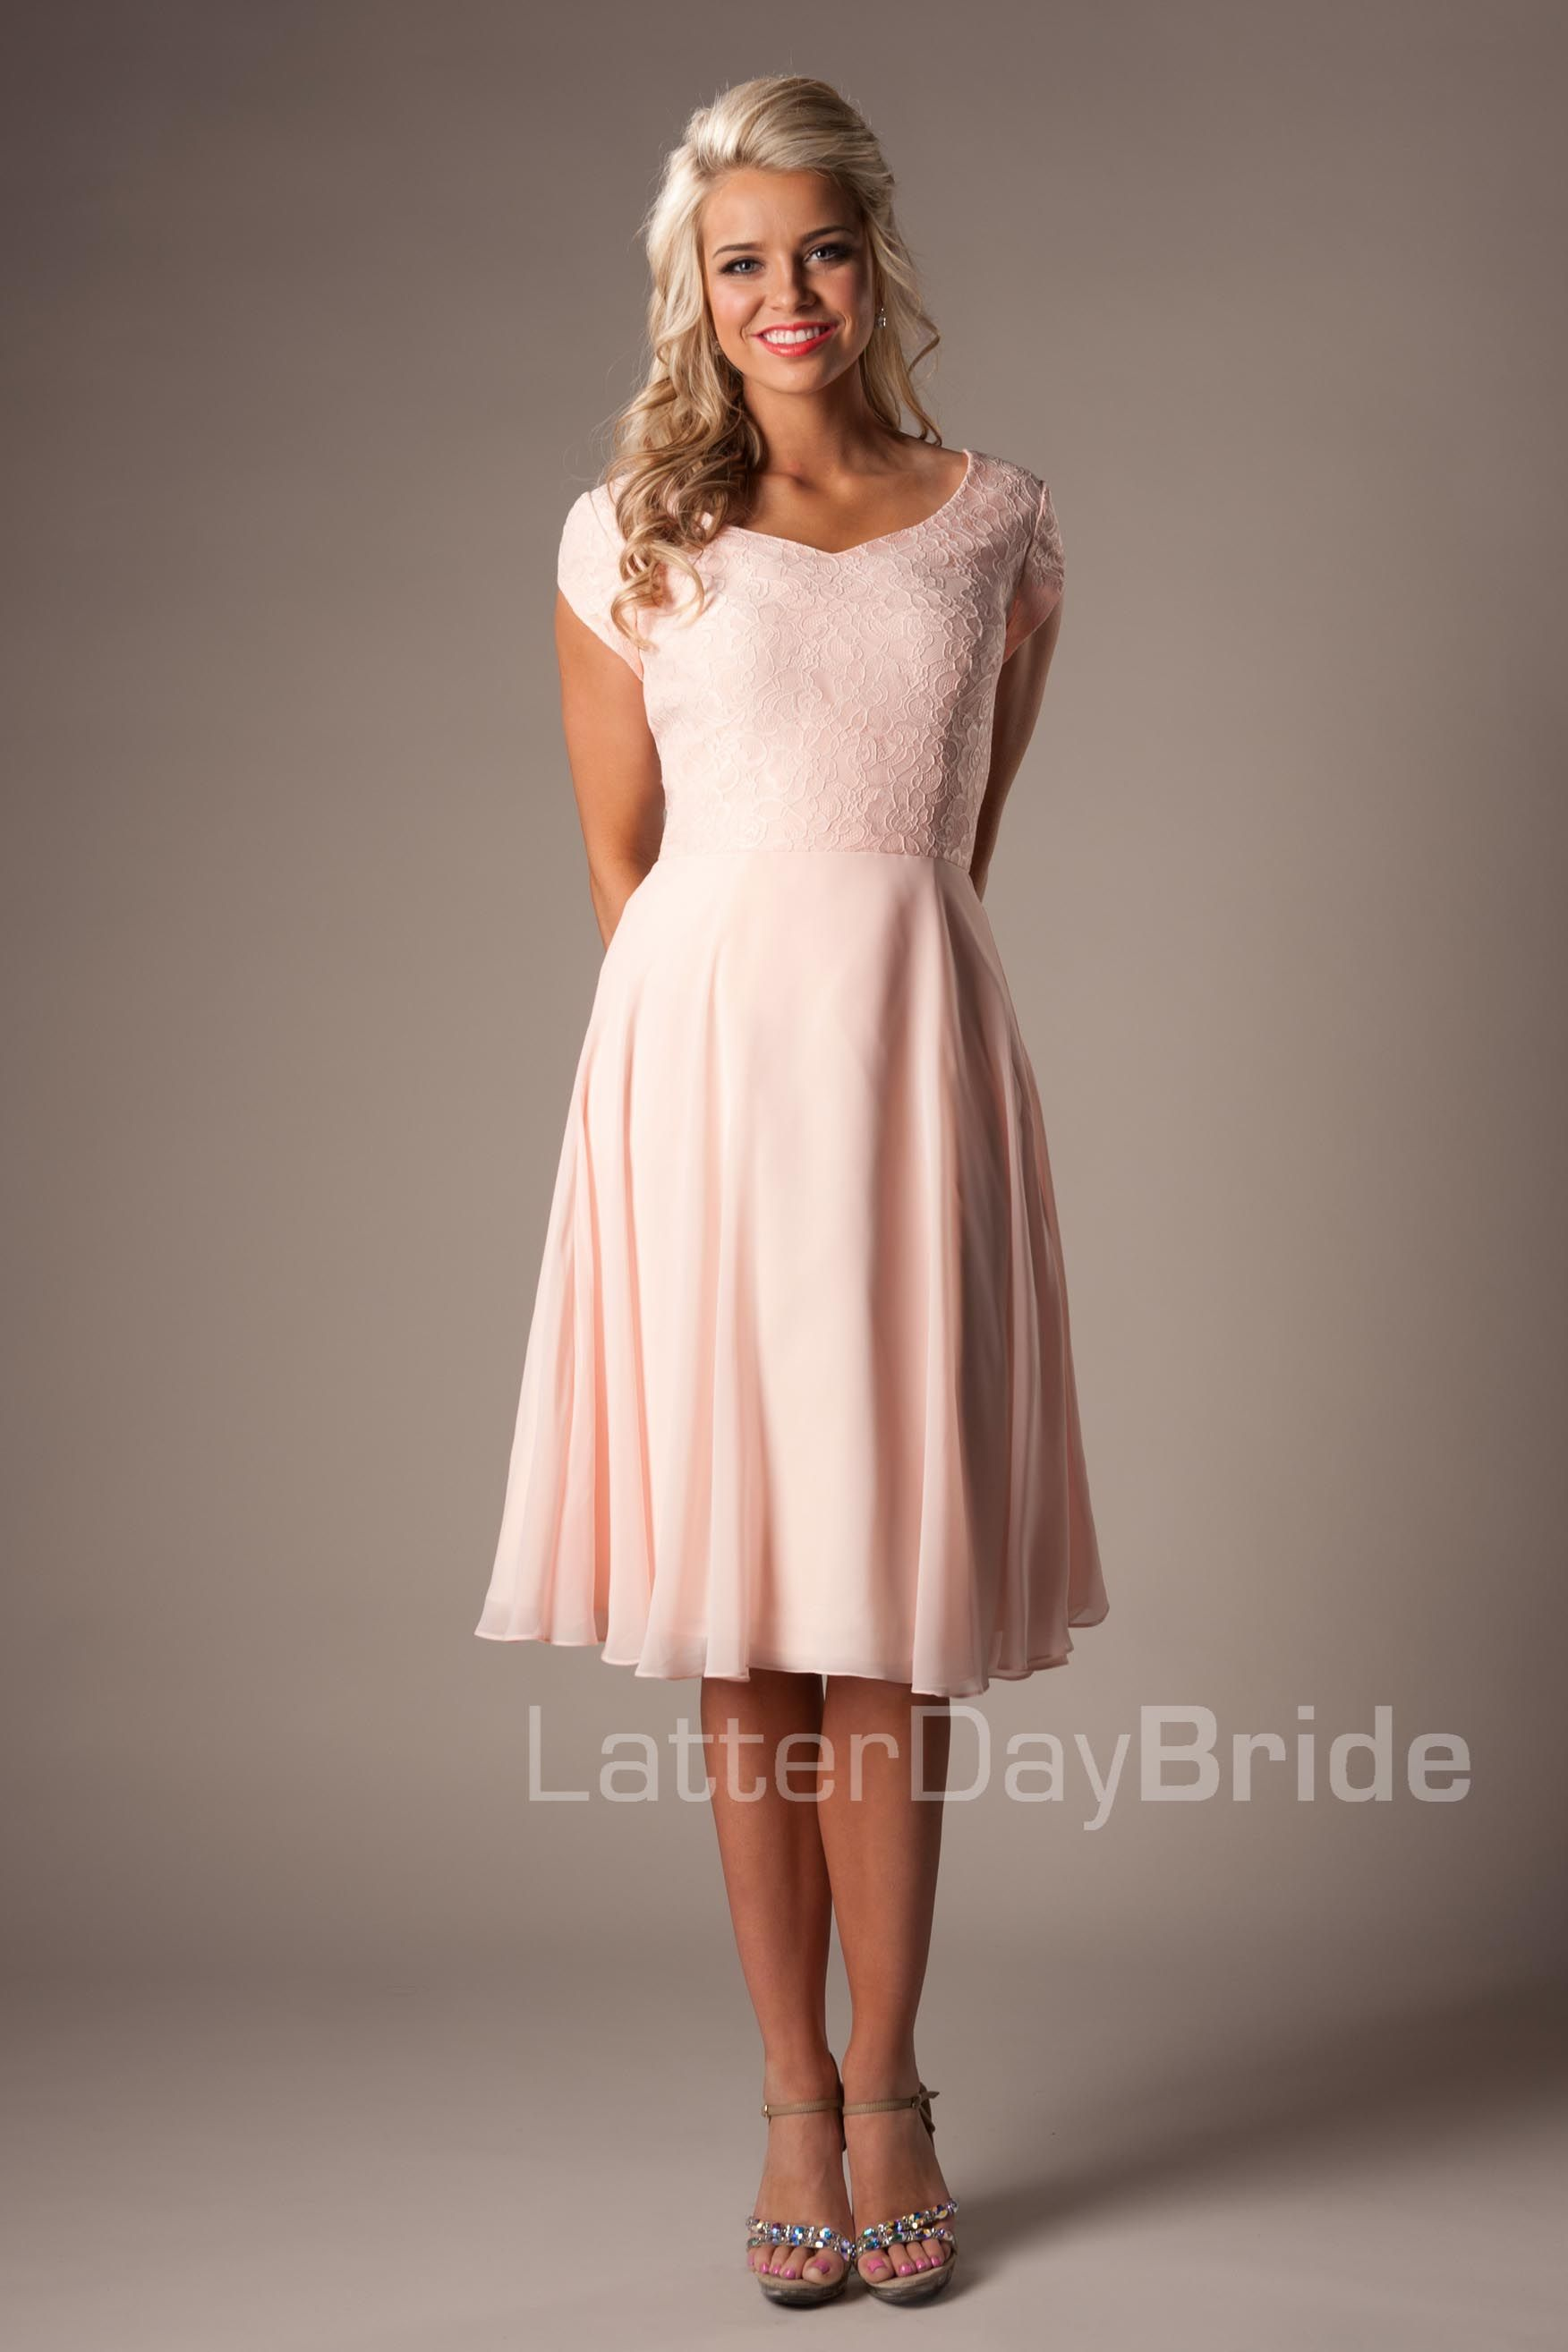 Kandco wedding dresses